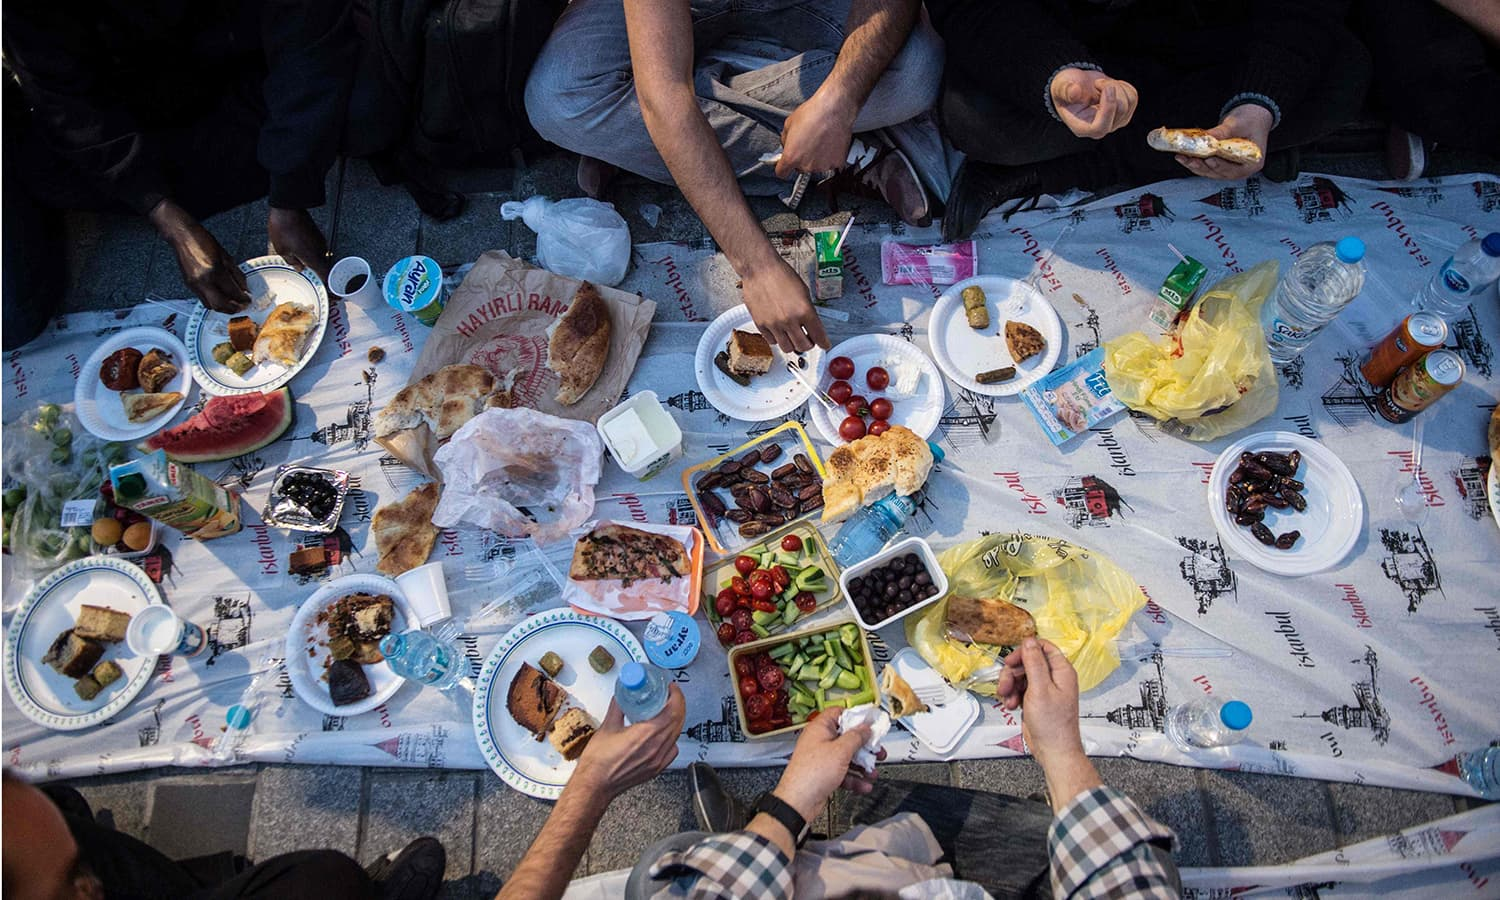 People break their fast on May 16 near Taksim Square in Istanbul, during the first day of the holy month of Ramazan. — AFP